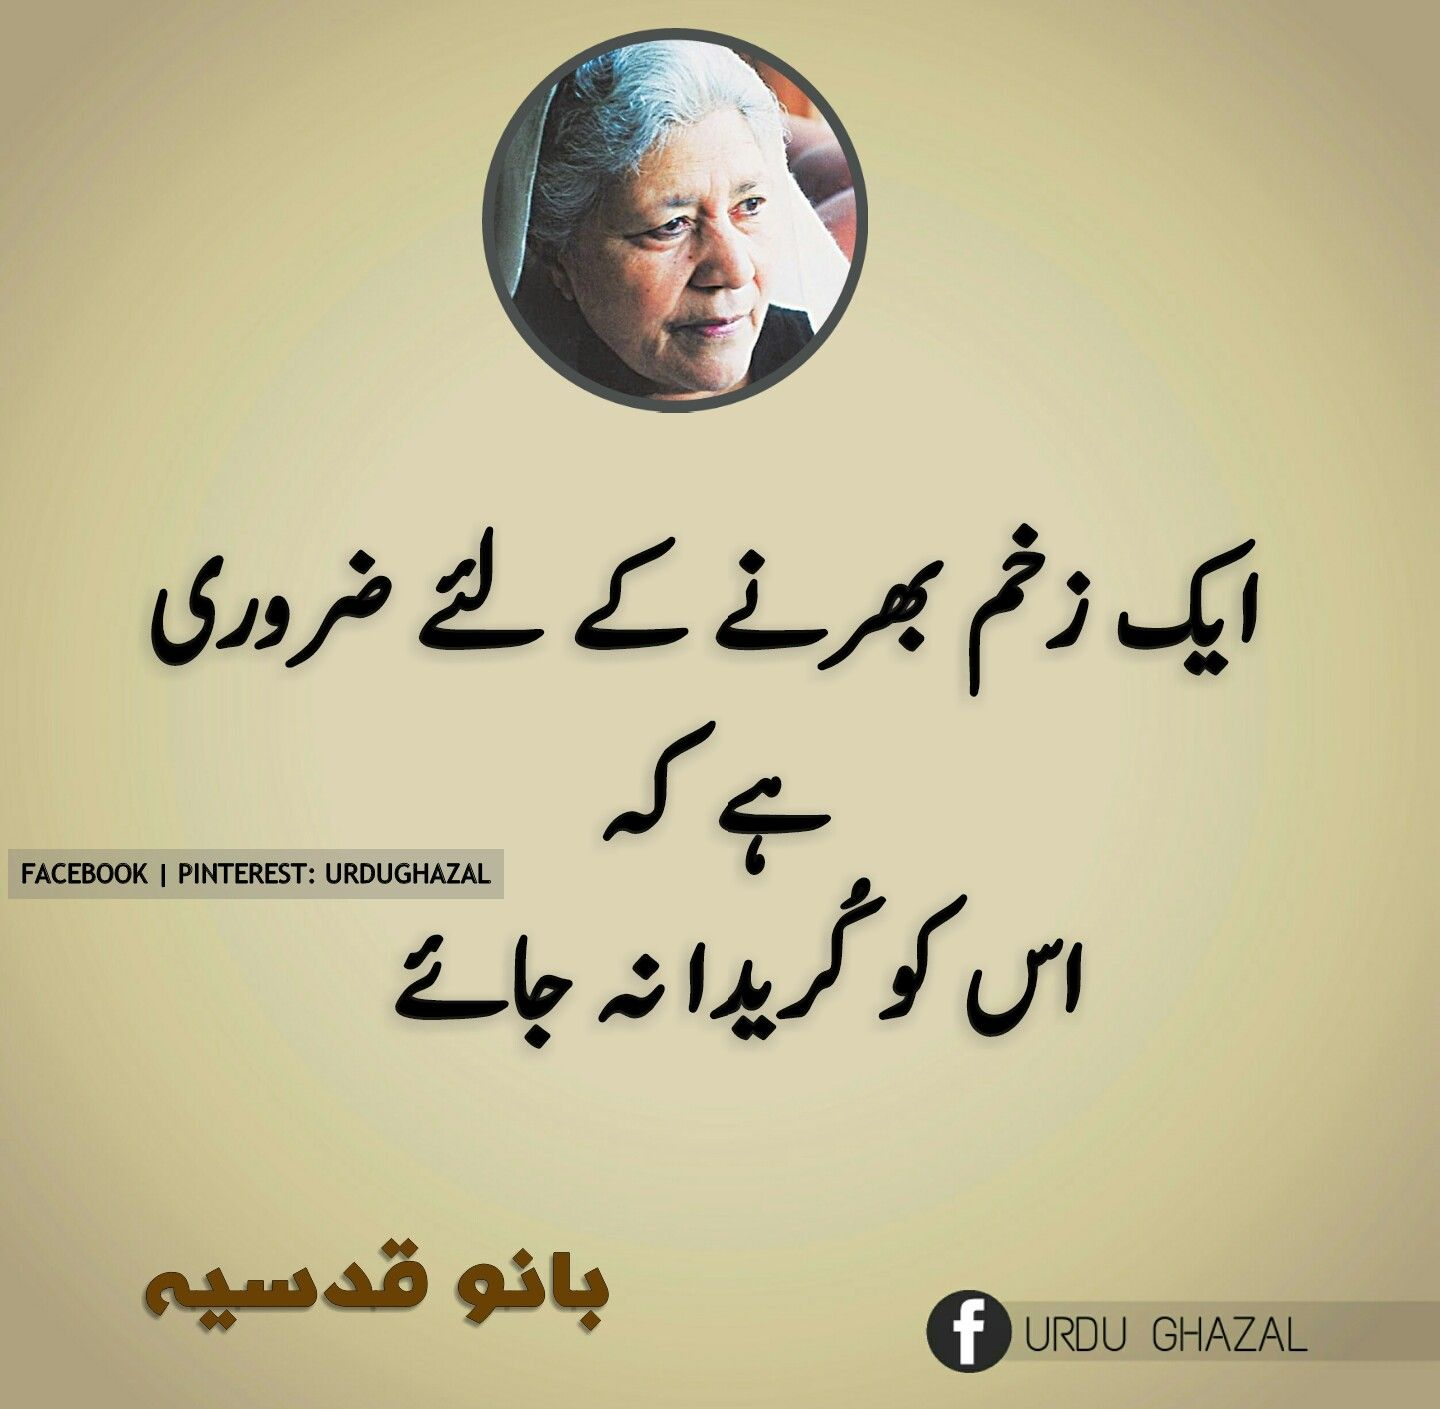 Bano Qudsia Dialogue Pin By Urdu Ghazal اردو غزل On Bano Qudsia Urdu Quotes Quotes